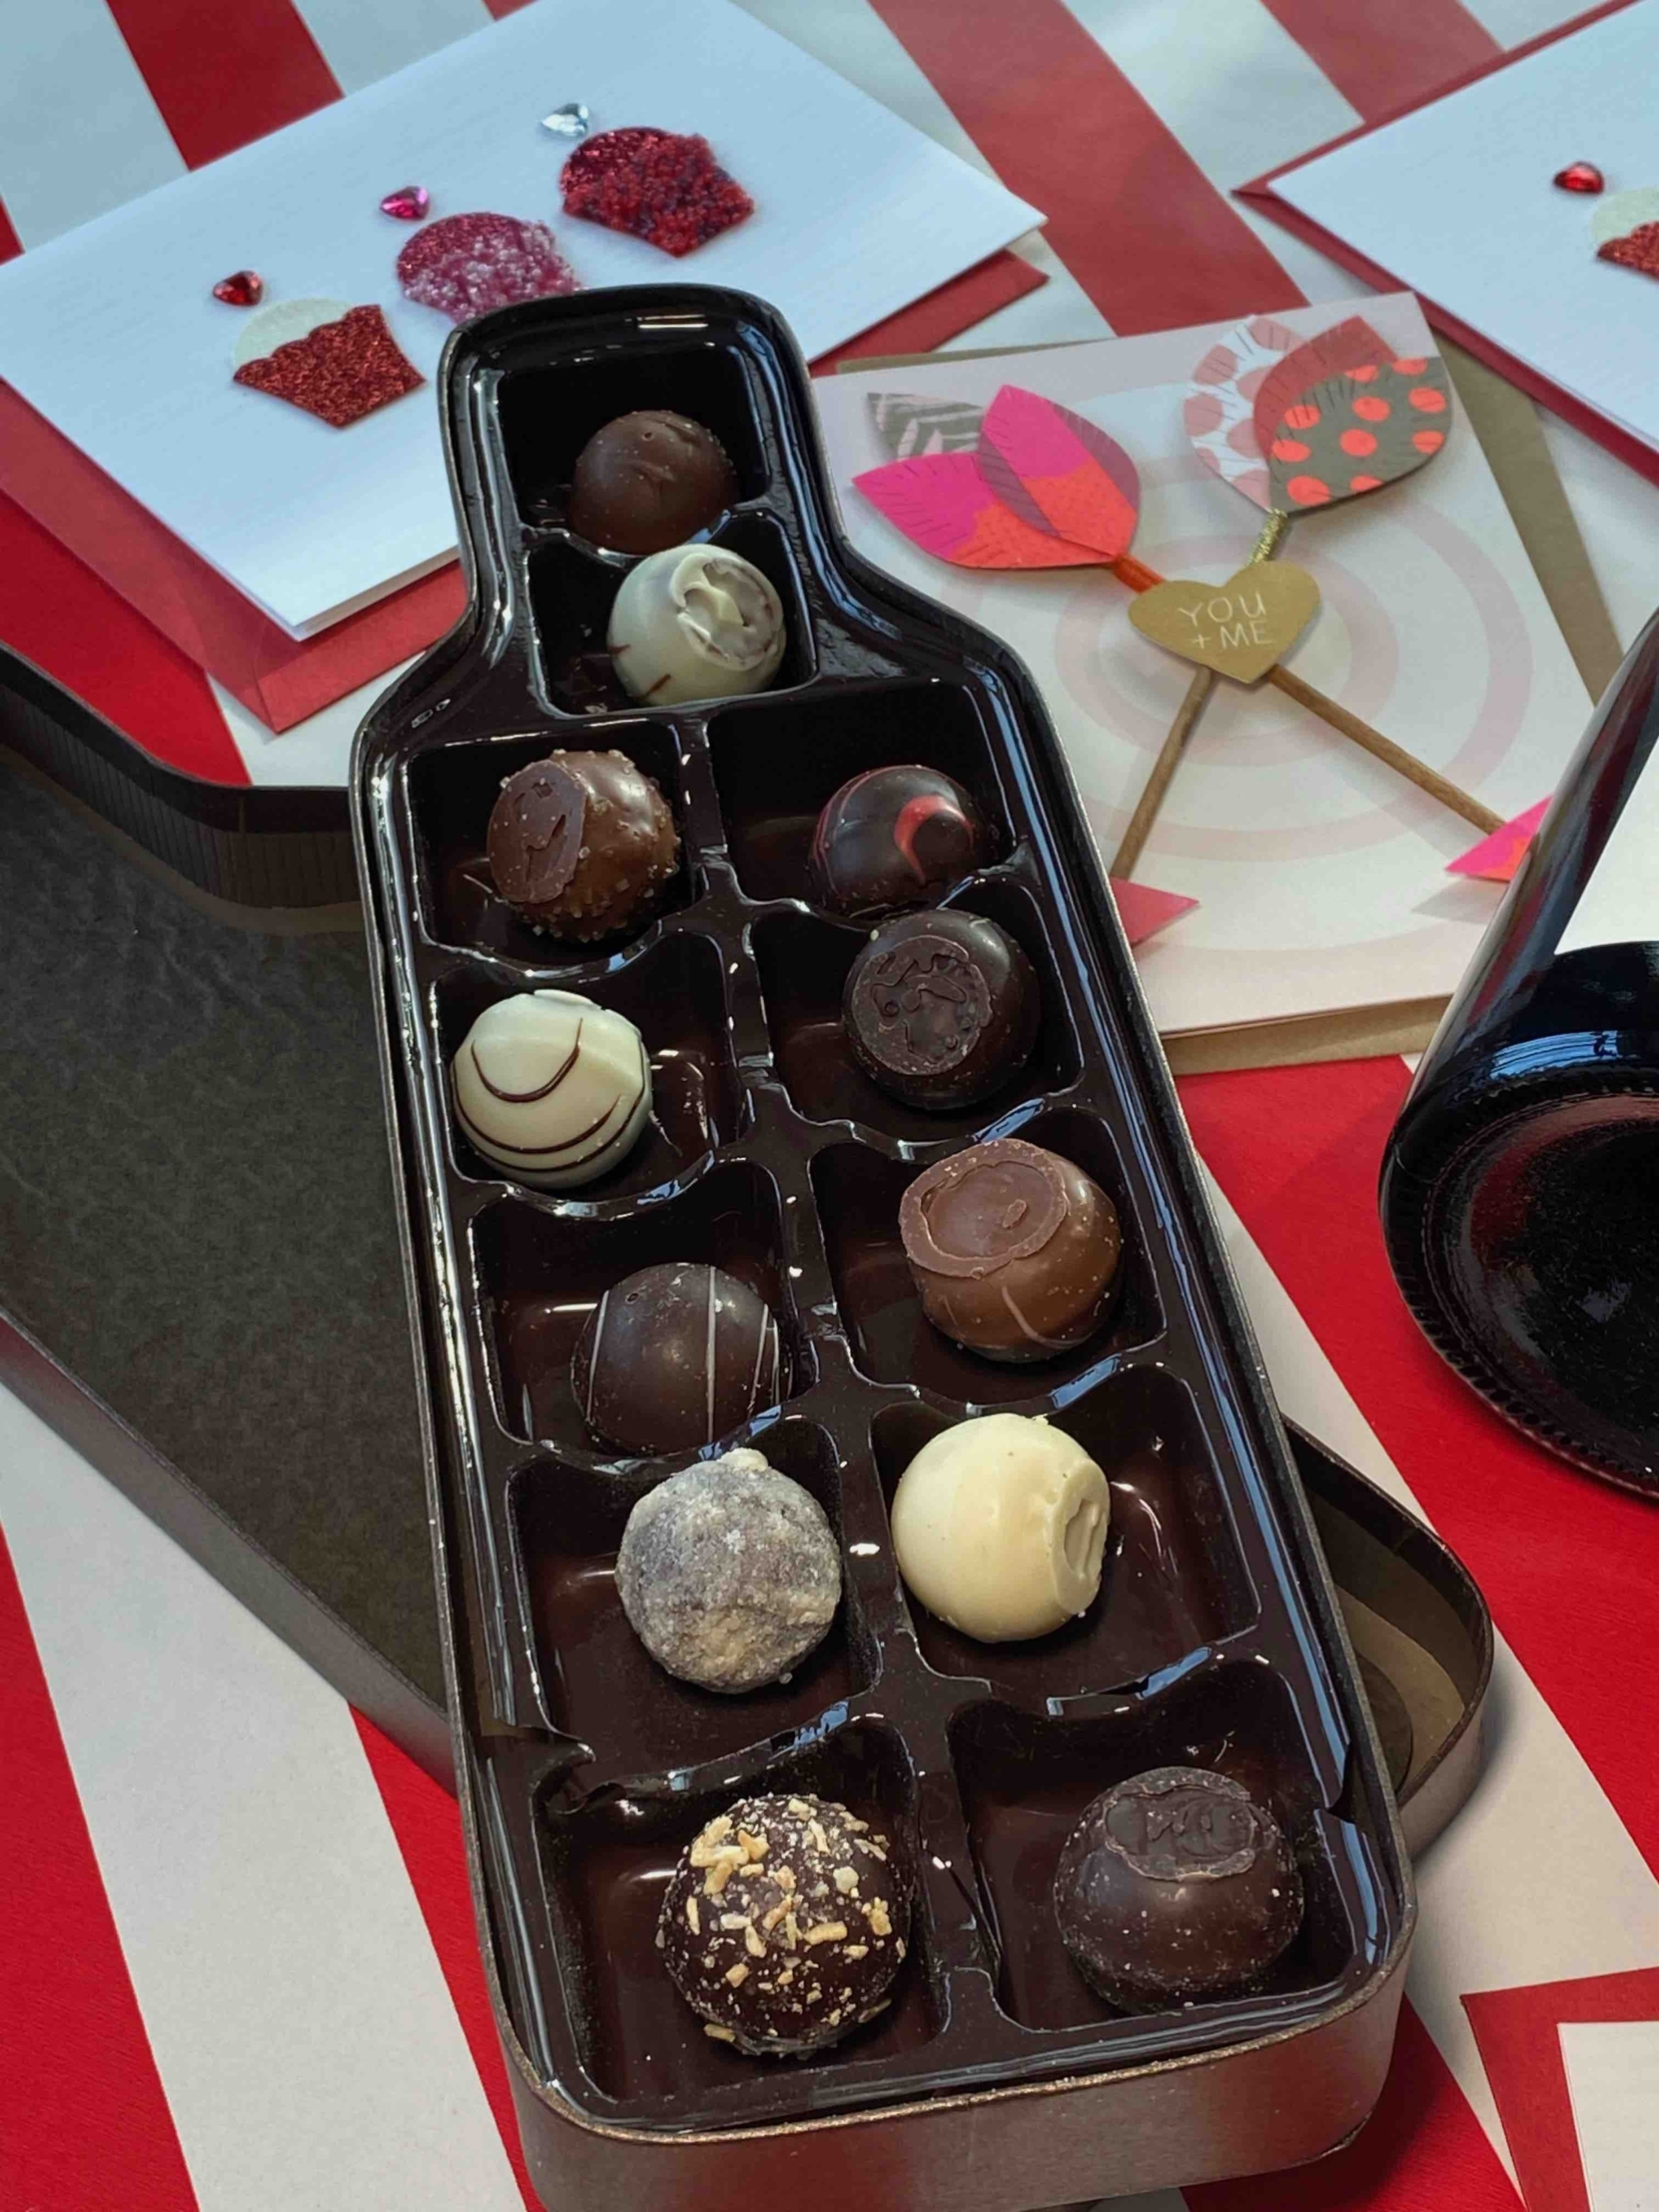 Sugar Plum Chocolates Top Things To Do This Valentine's Day At Home To Make It Romantic & Memorable